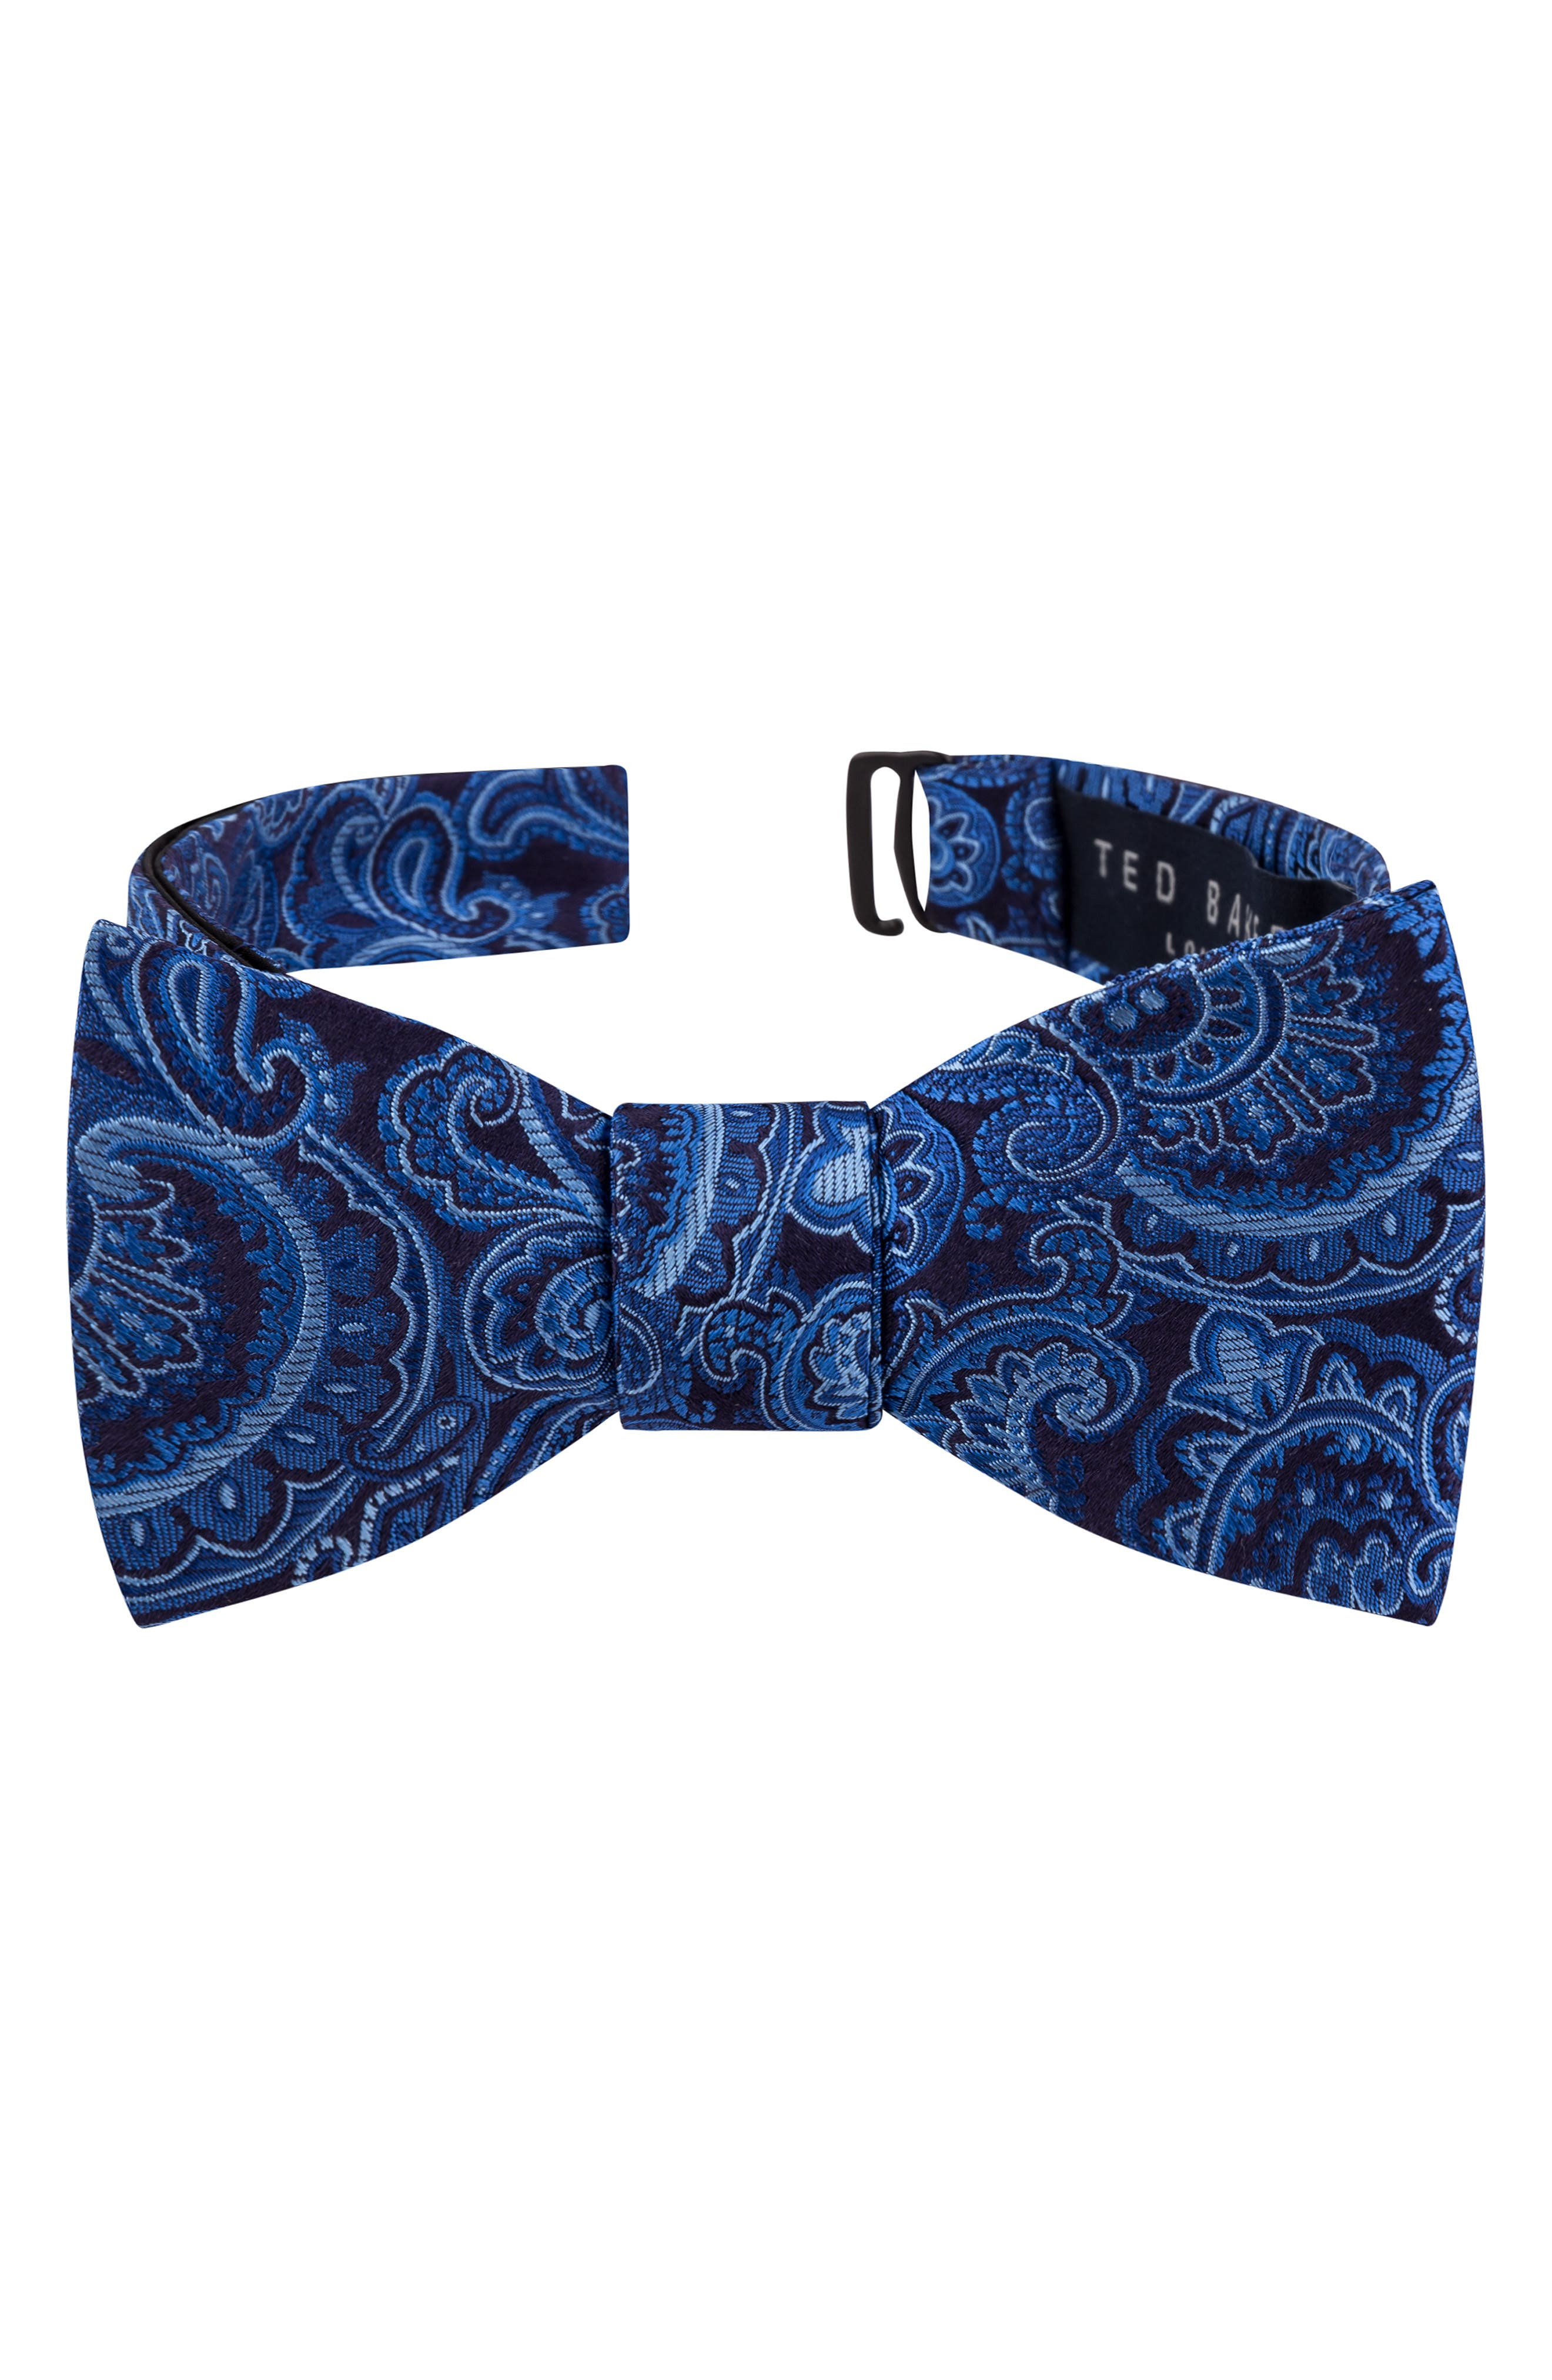 Edwardian Men's Fashion & Clothing Mens Ted Baker London Paisley Silk Bow Tie Size Regular - Blue $59.50 AT vintagedancer.com